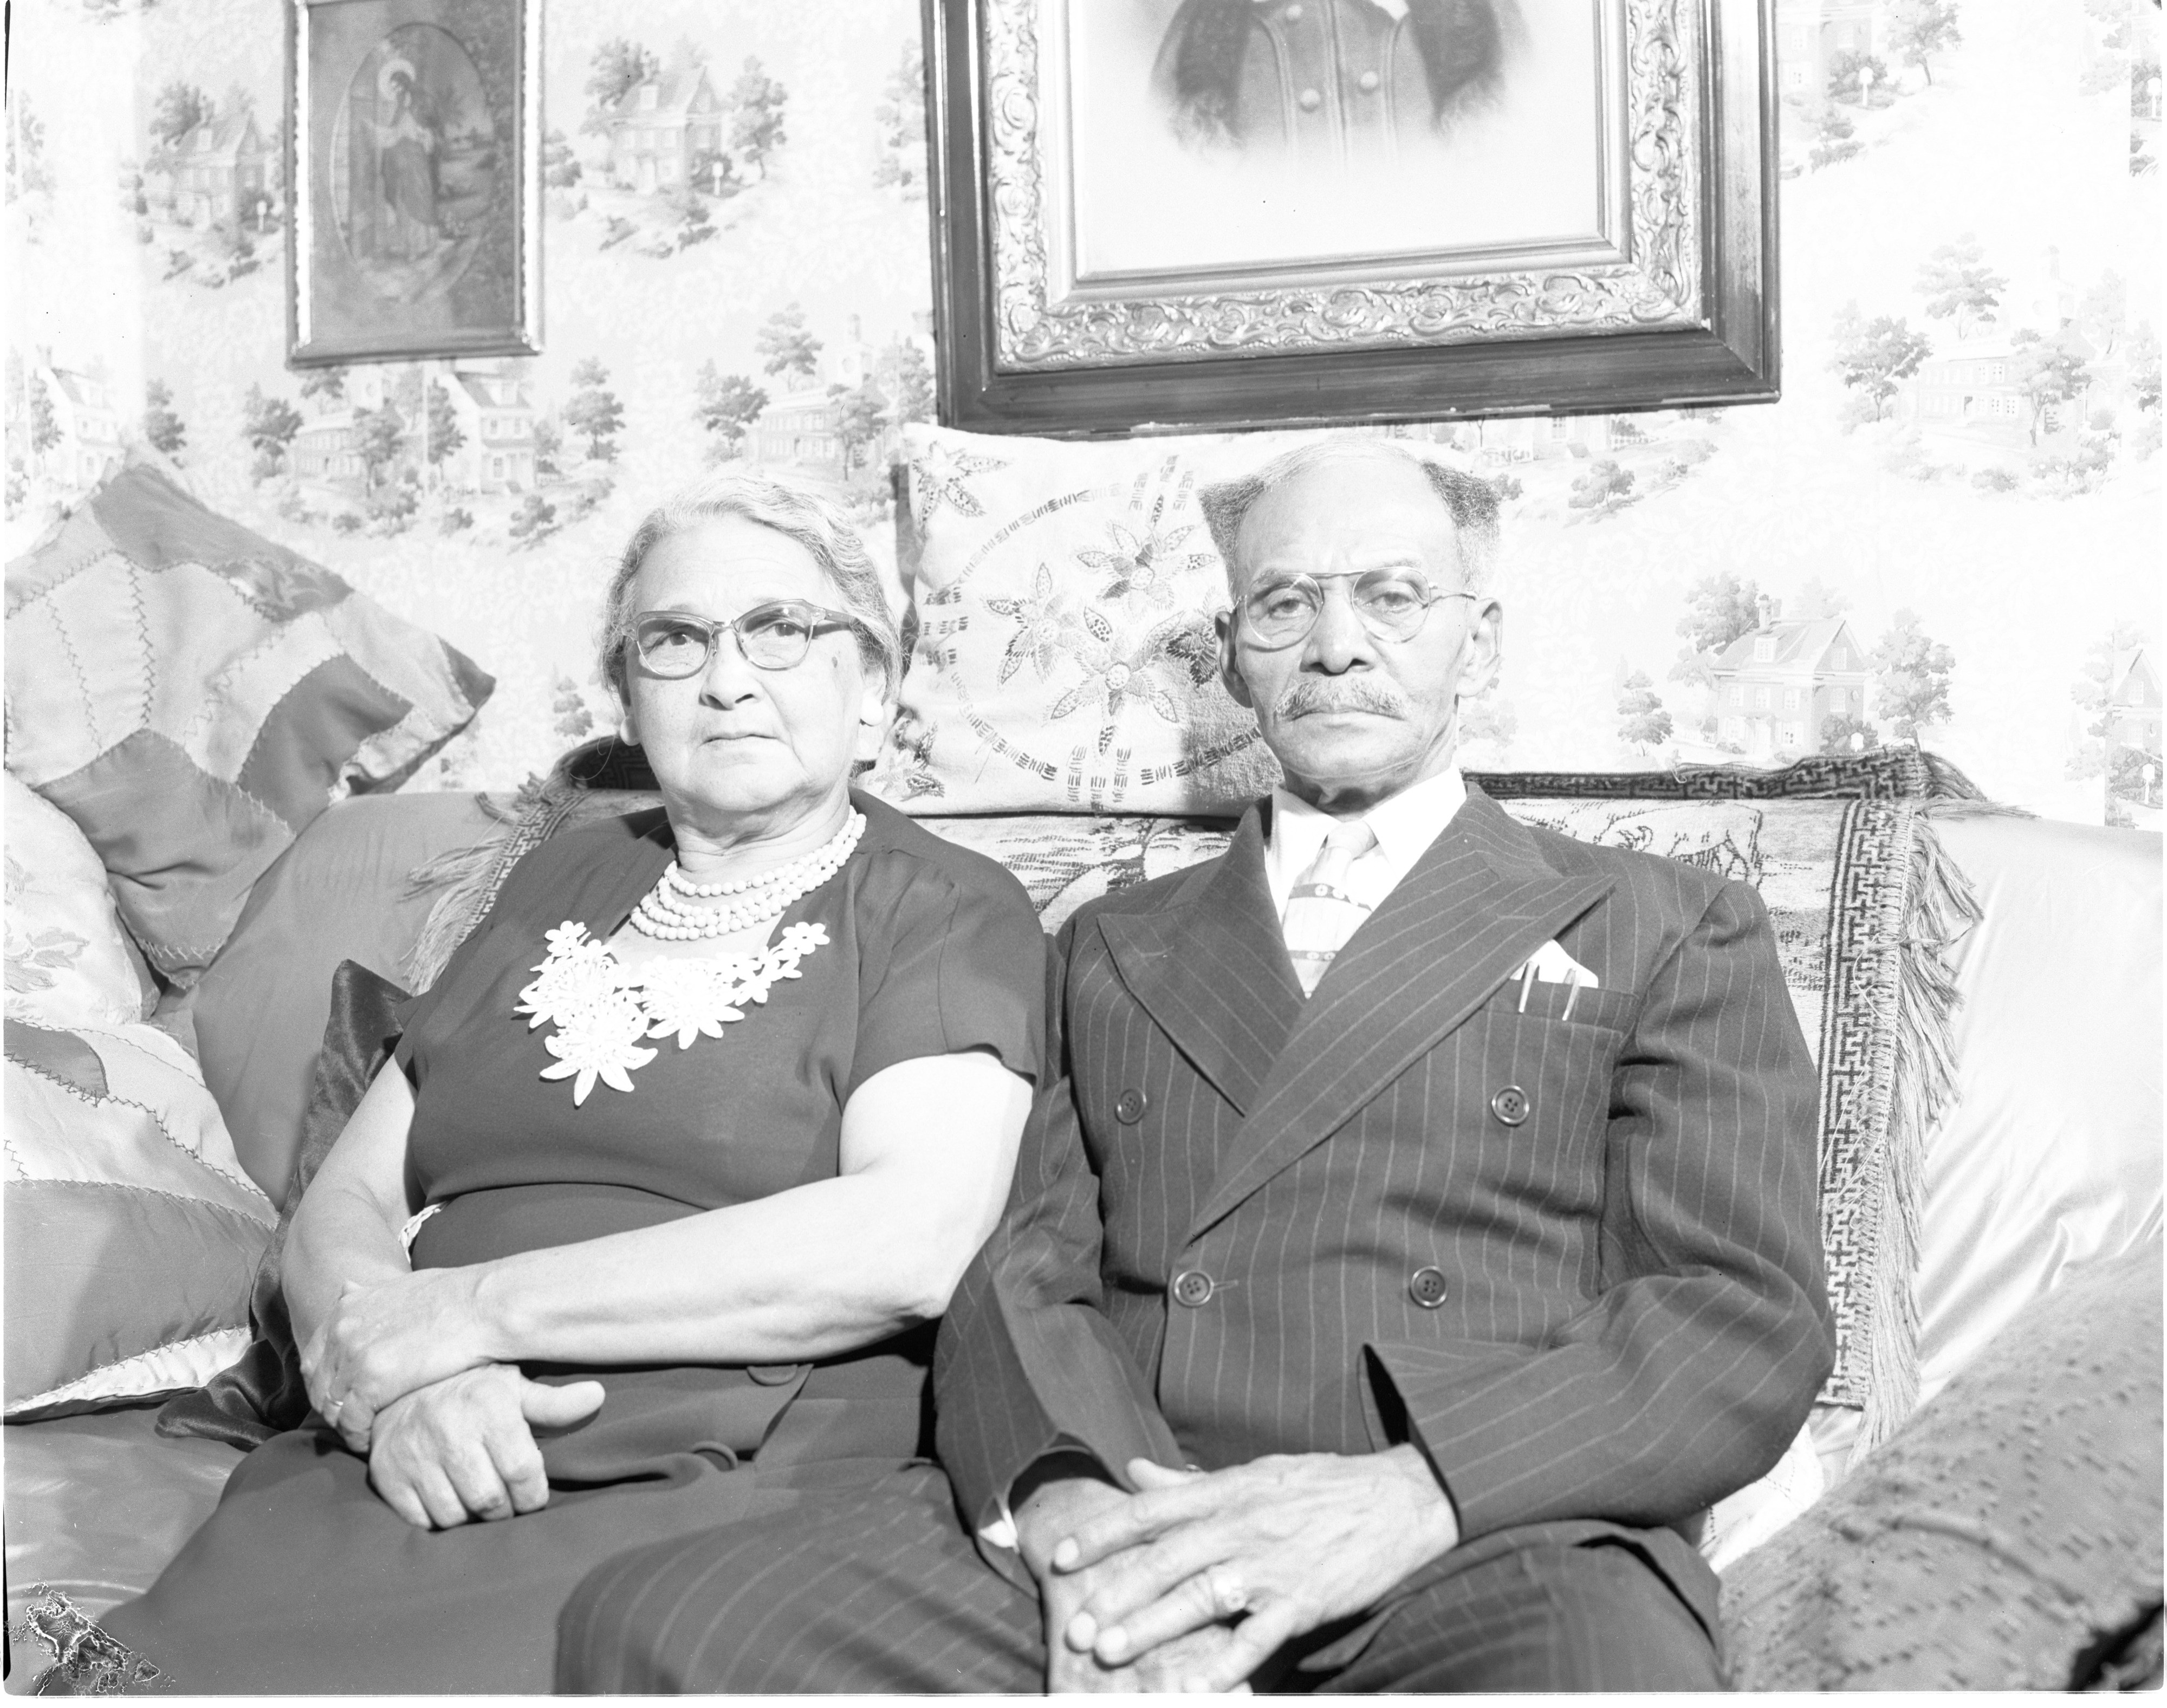 Sarah & Ozias Davis - Married 50 Years, October 1956 image